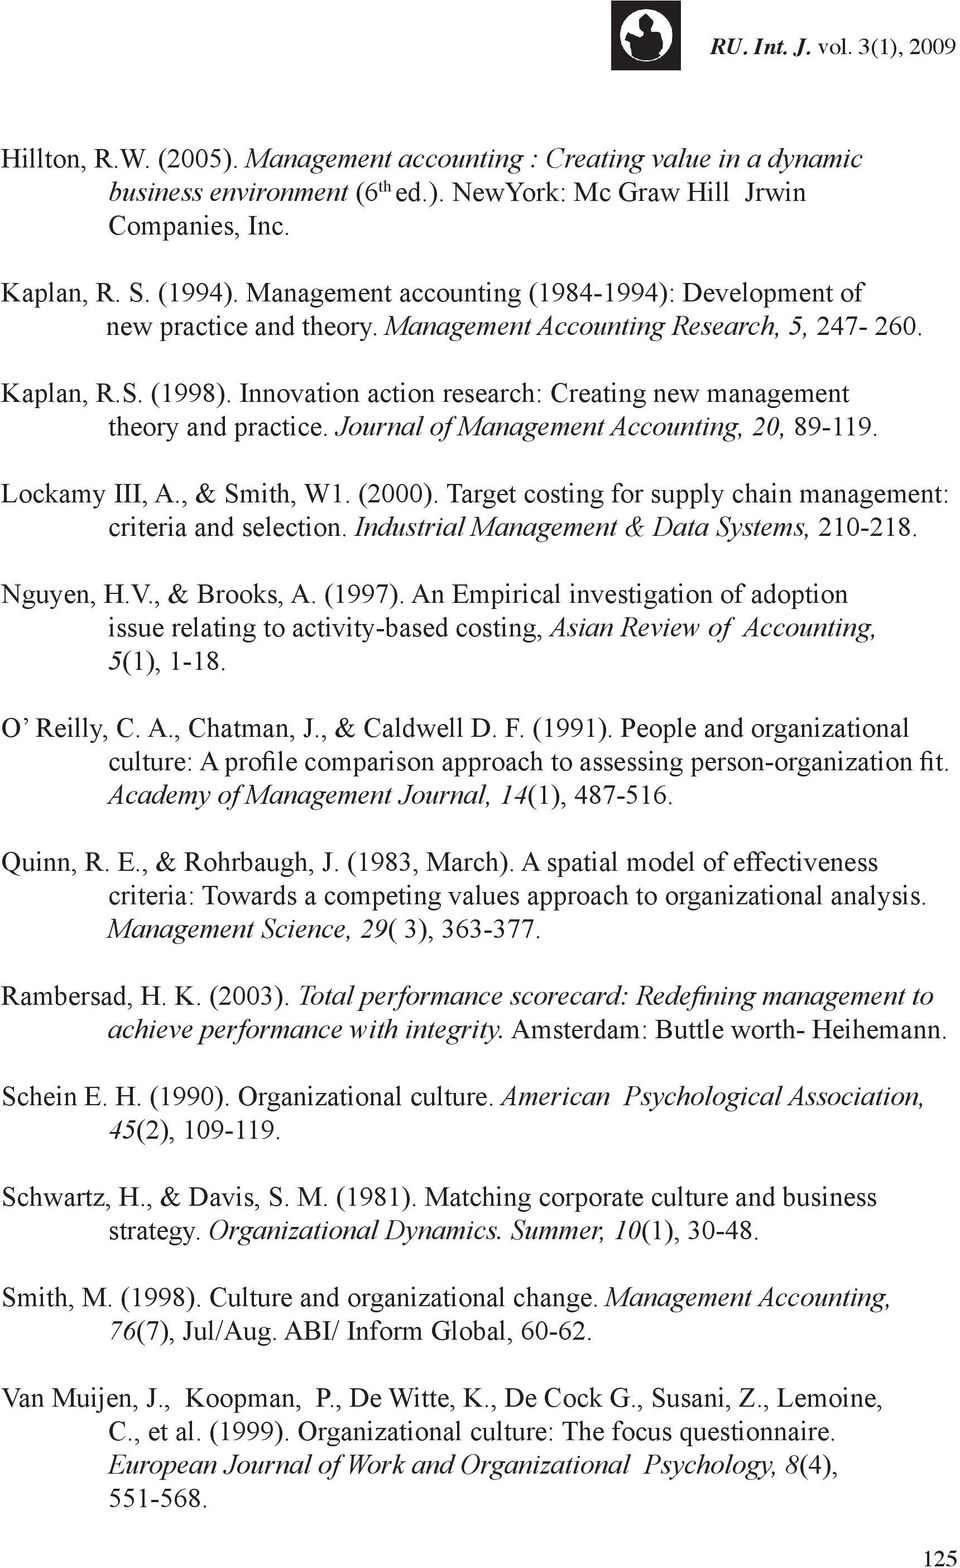 Innovation action research: Creating new management theory and practice. Journal of Management Accounting, 20, 89-119. Lockamy III, A., & Smith, W1. (2000).